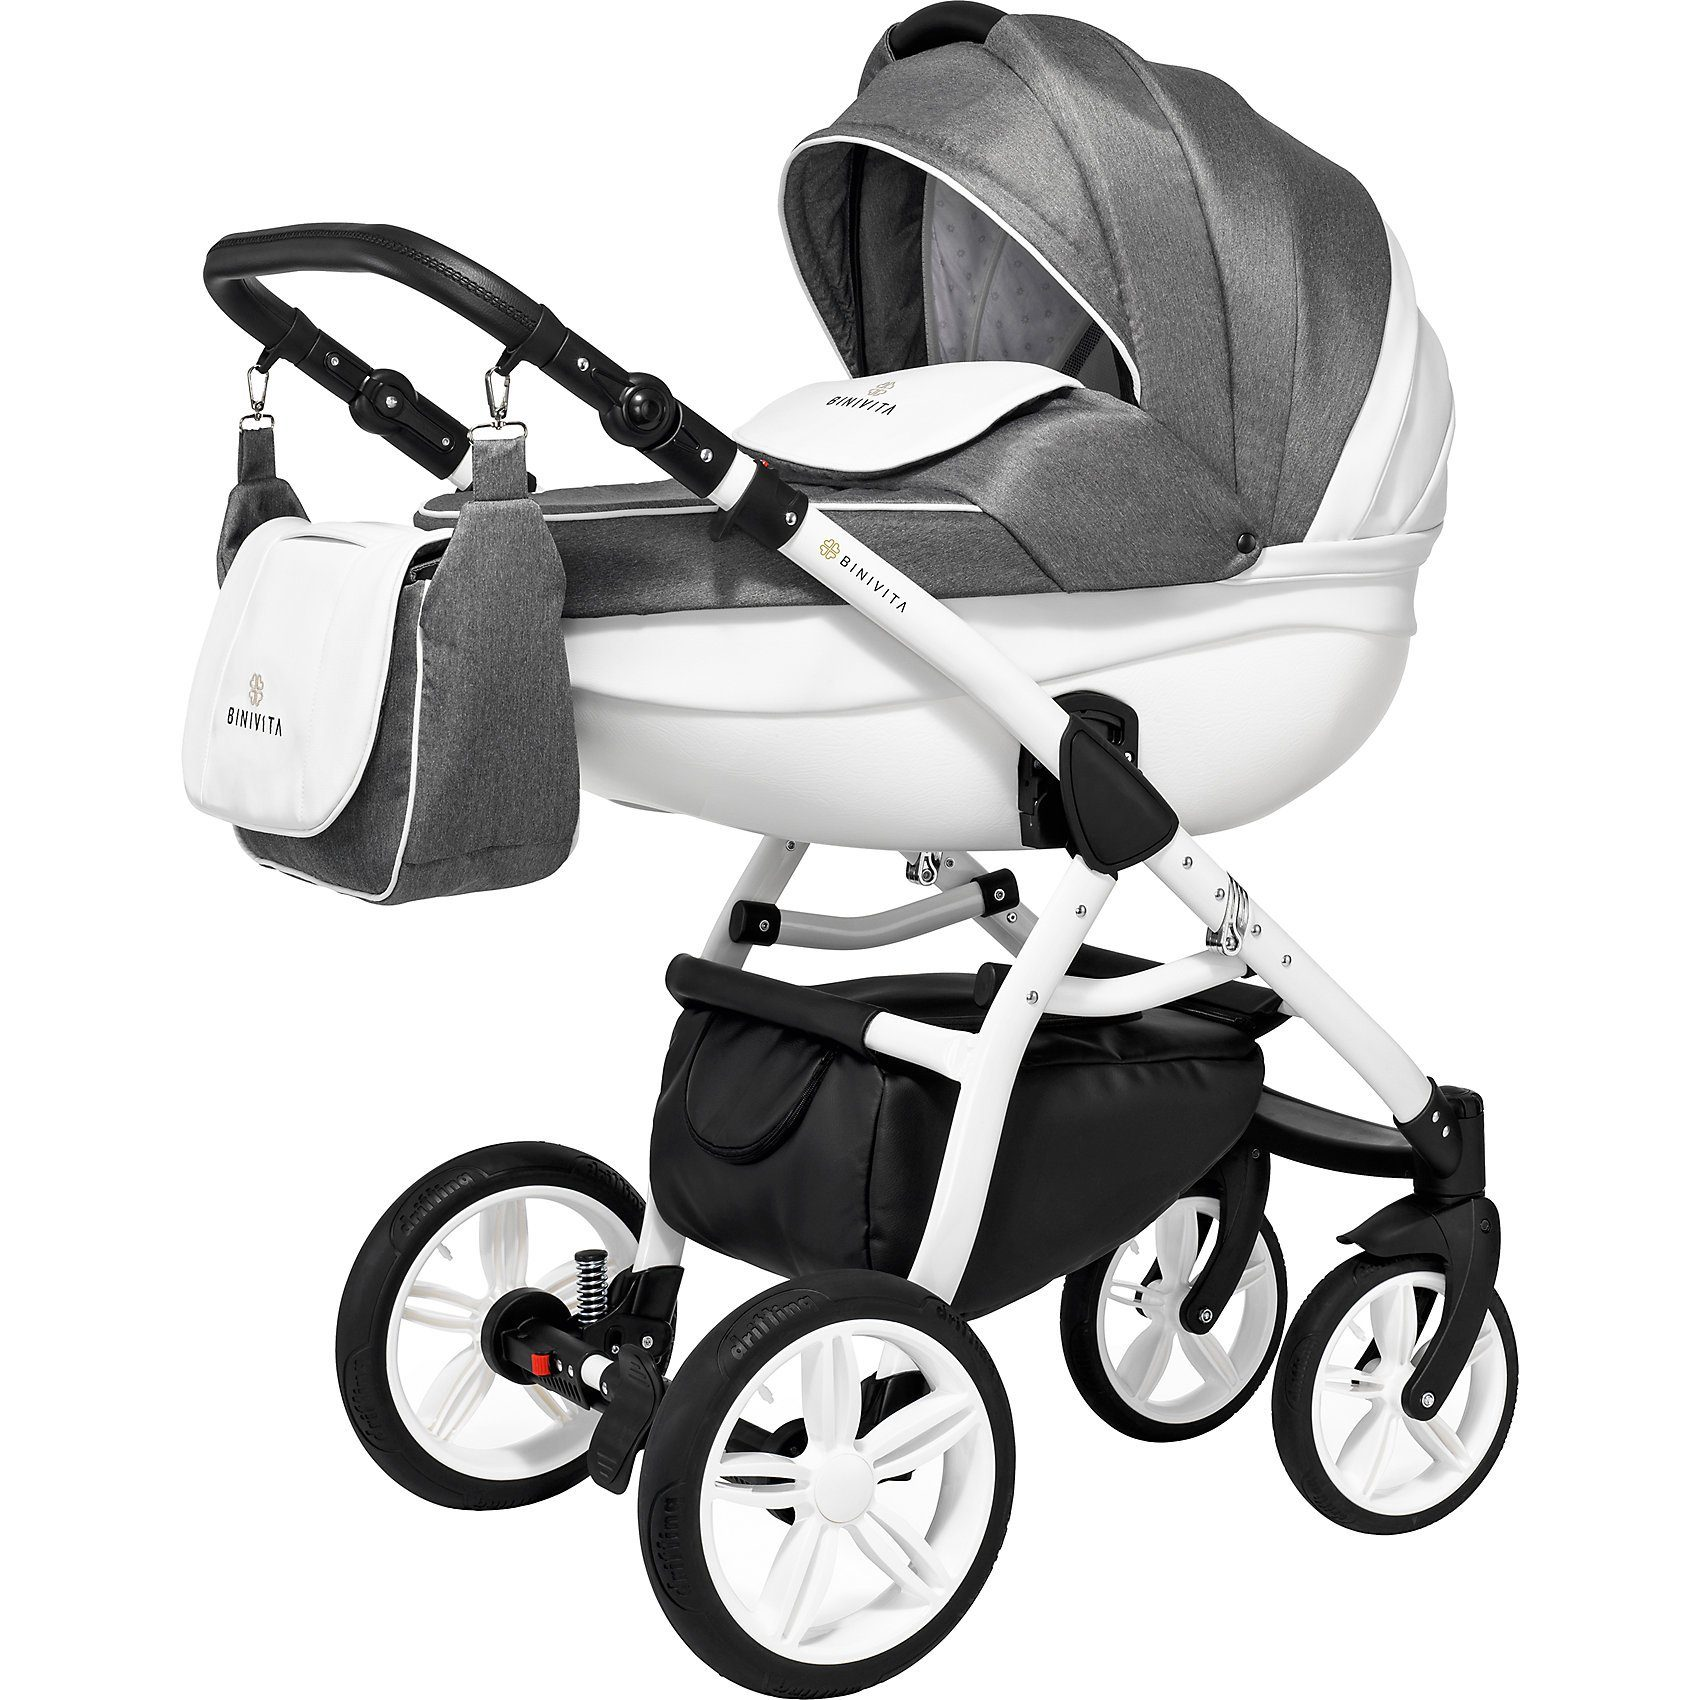 Binivita Kombi Kinderwagen Elements, 2 in 1, Silver Diamond, 2018